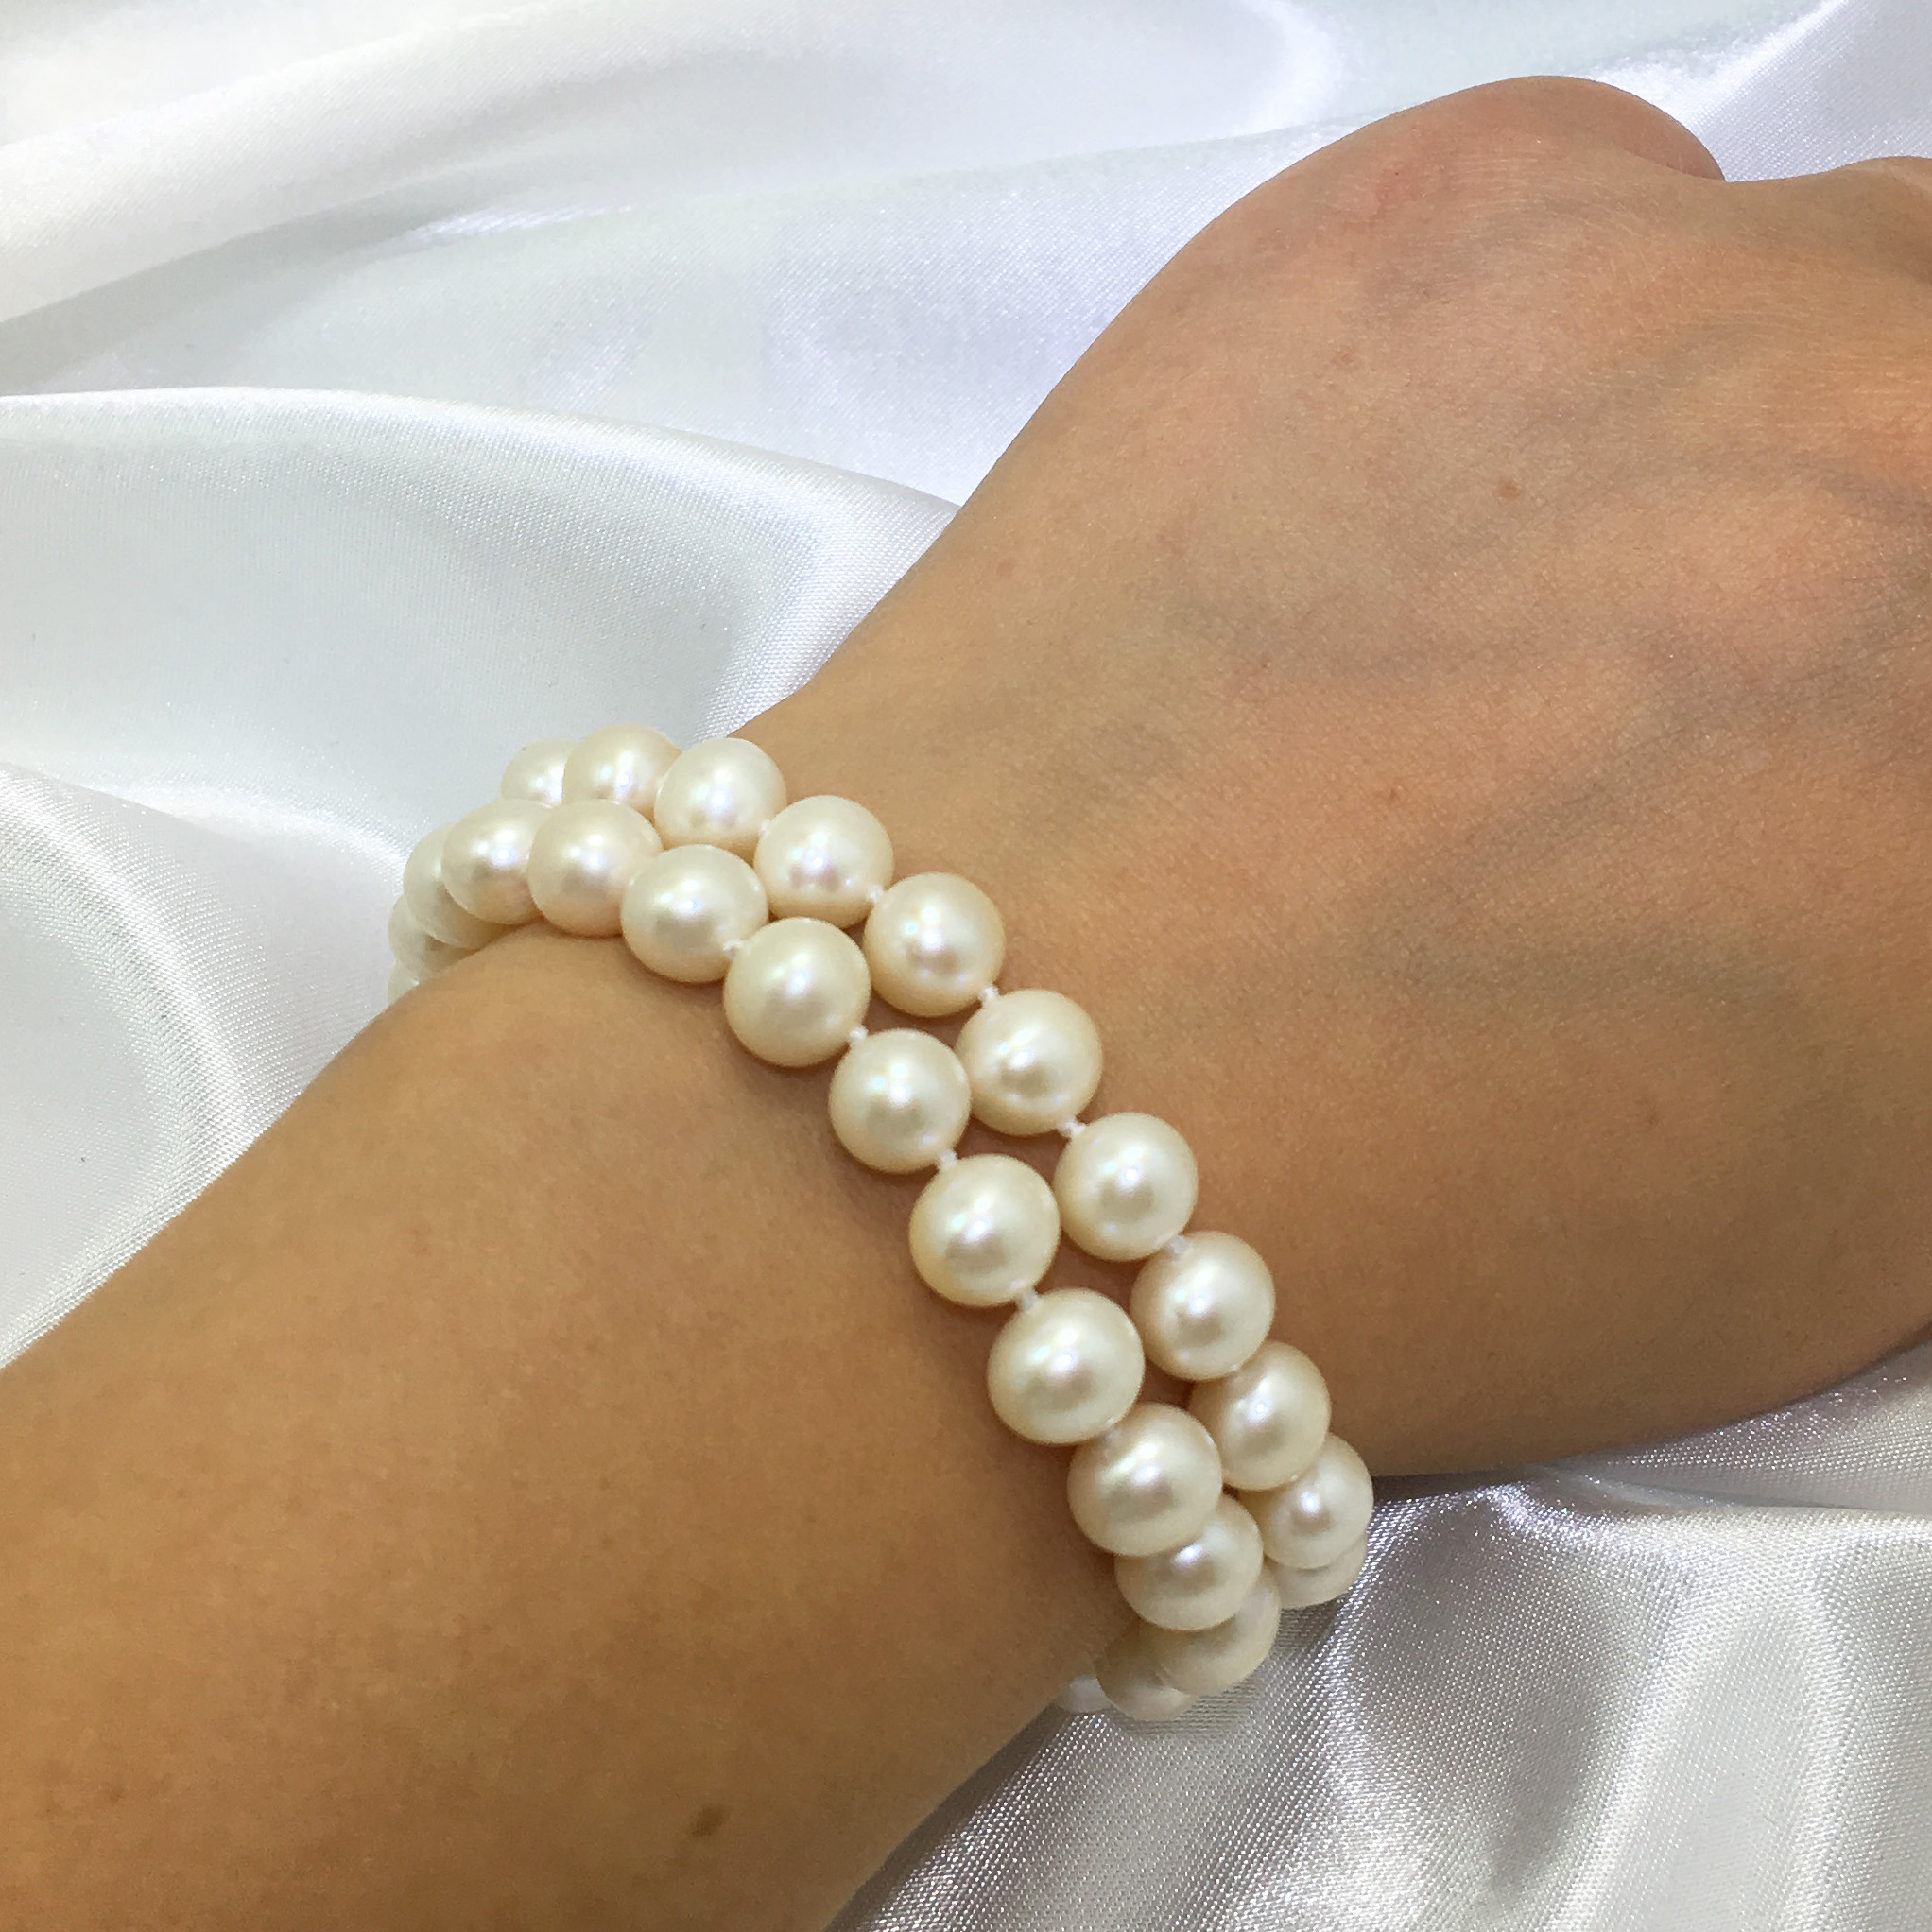 kiel patrick infinity forever usa bracelet pearl products made anchor james in the